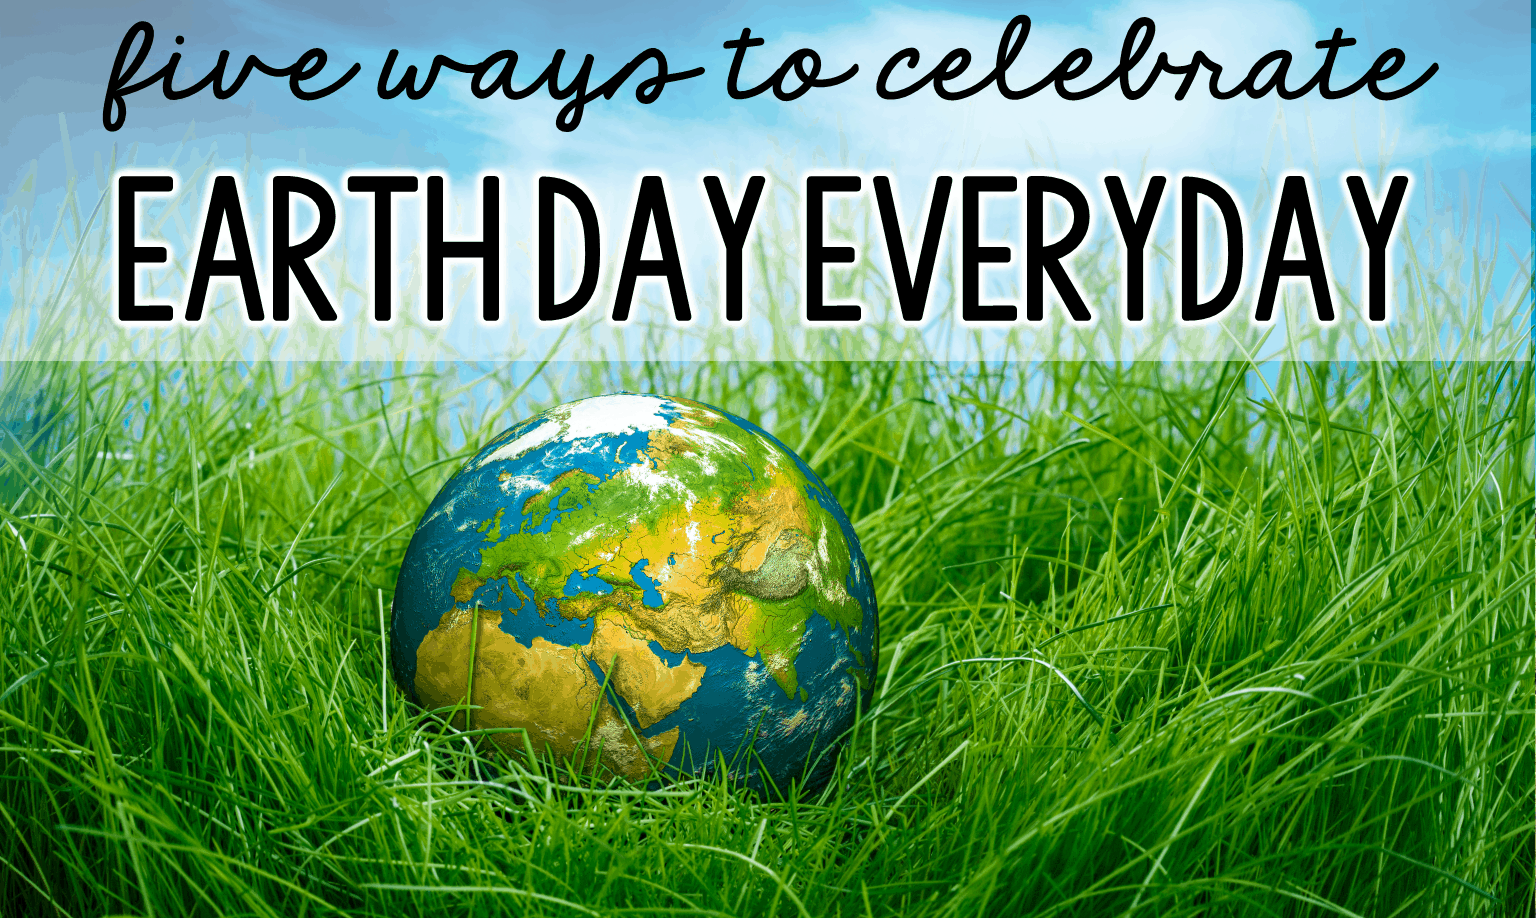 earth2bday2beverday-8900257